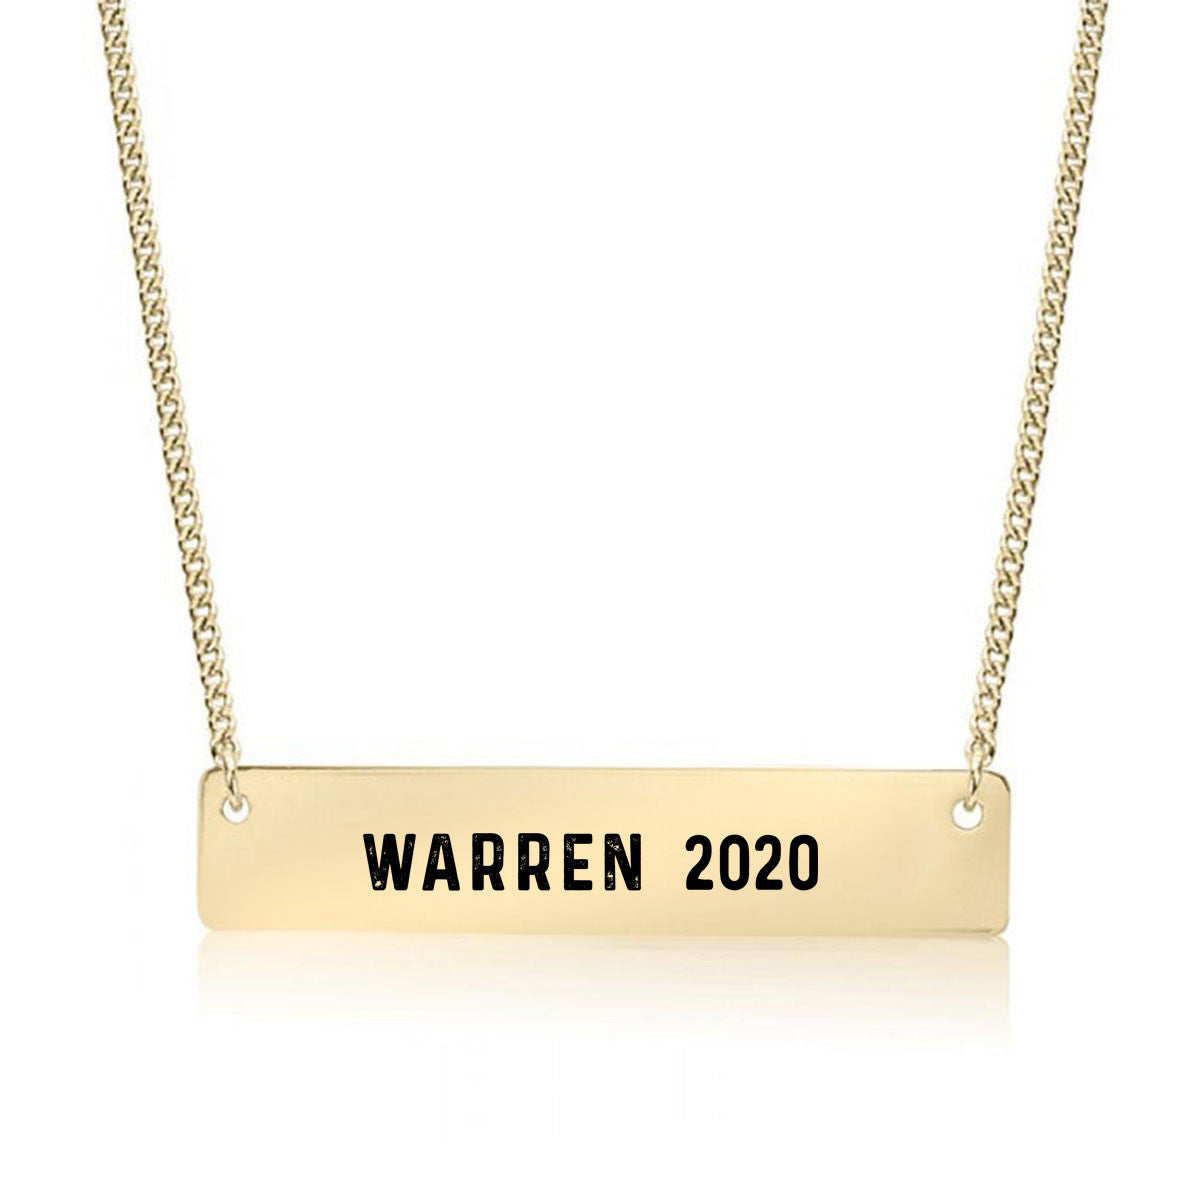 Warren 2020 Gold / Silver Bar Necklace